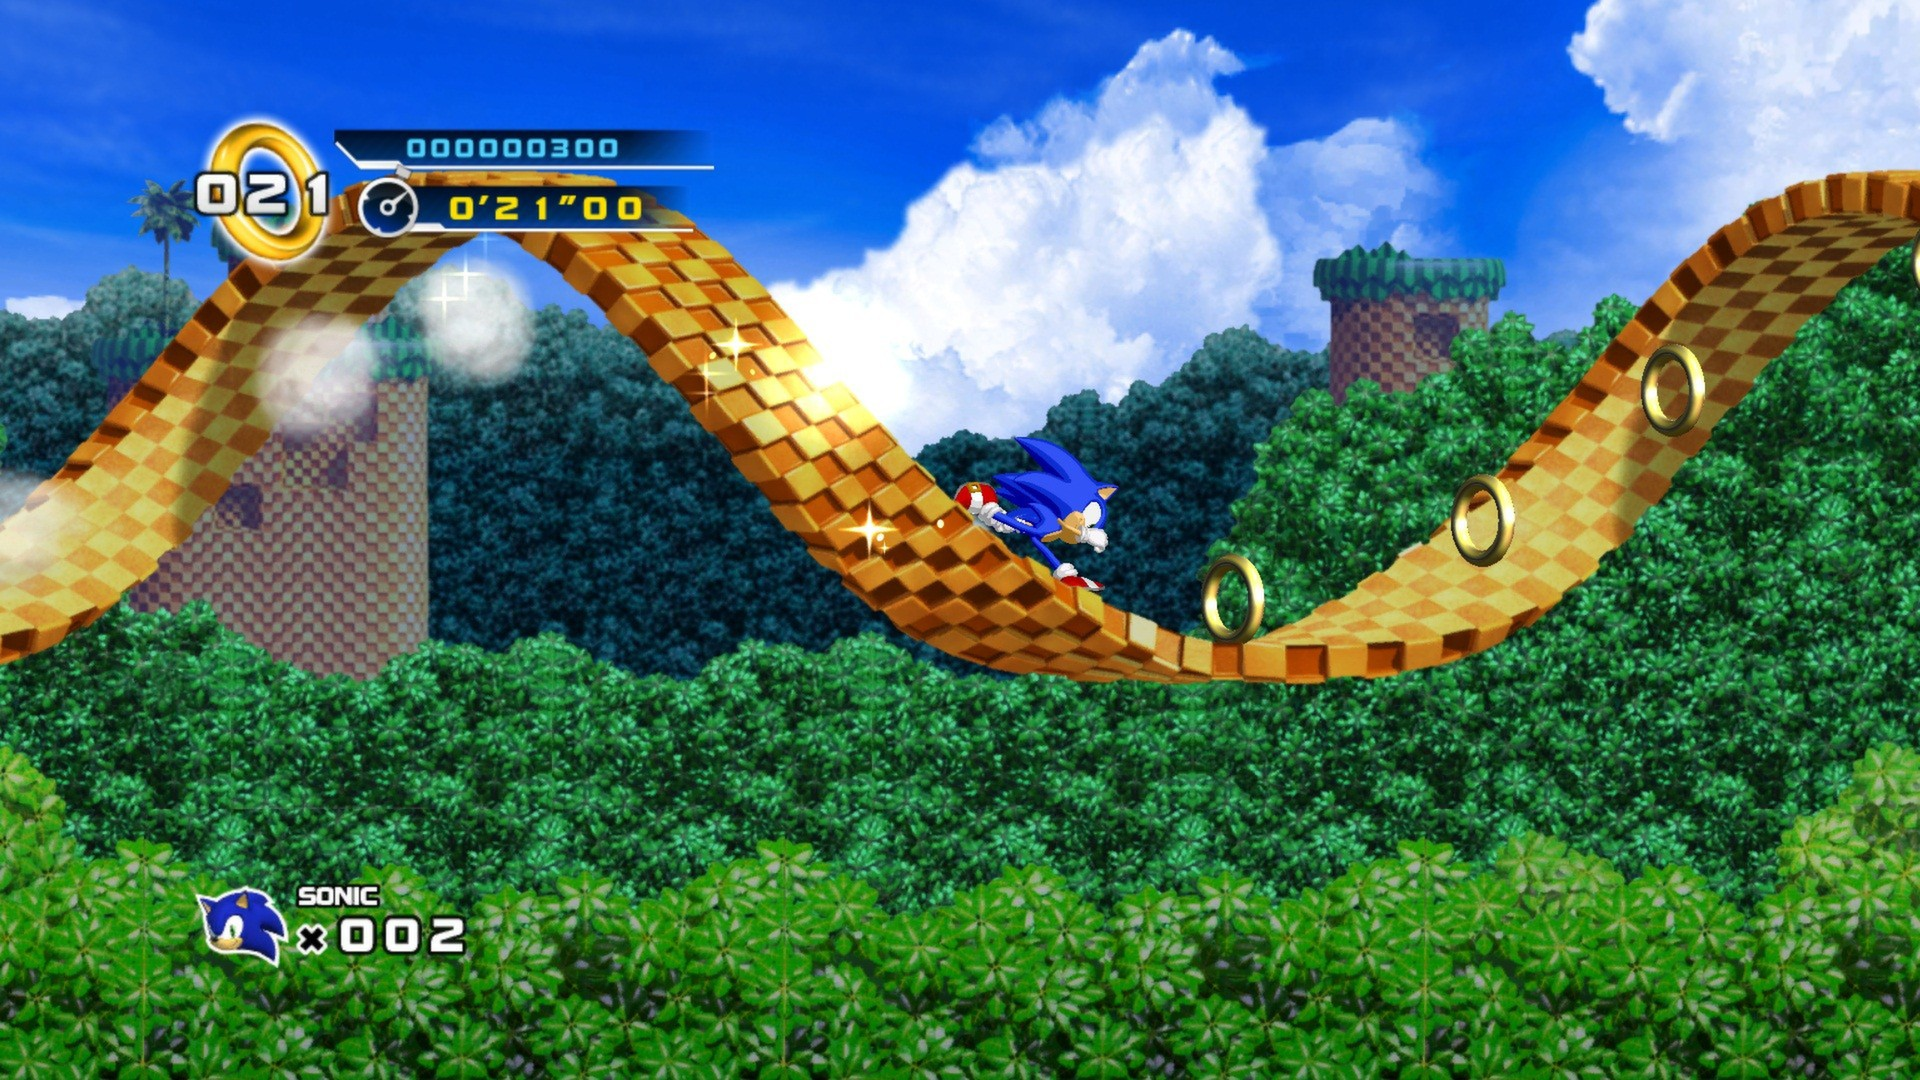 Sonic the Hedgehog 4 - Episode I Steam Key(Region Free)